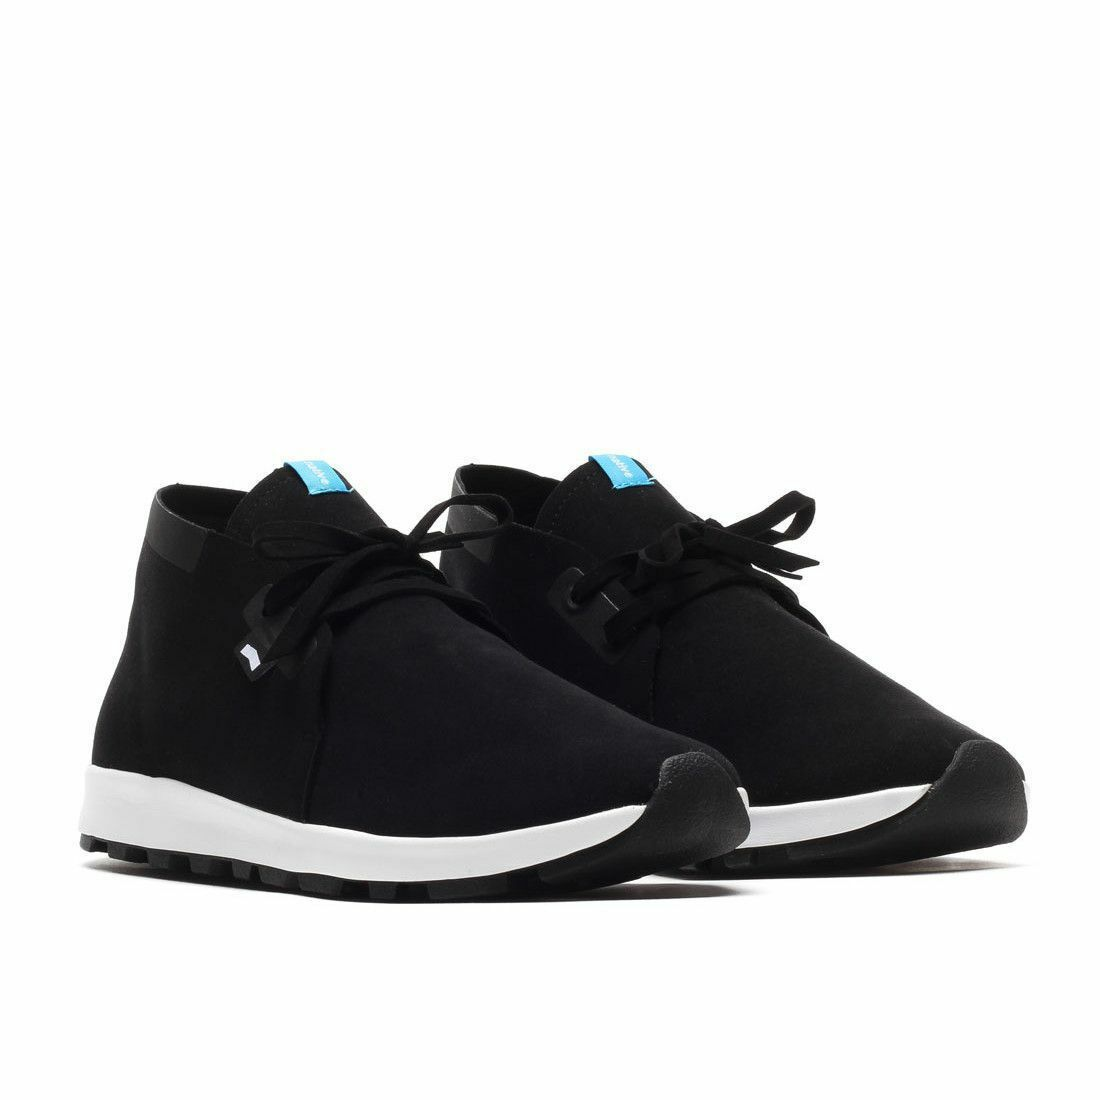 Native shoes AP Chukka Hydro Jiffy Black Lifestyle Adult 21103700-1123